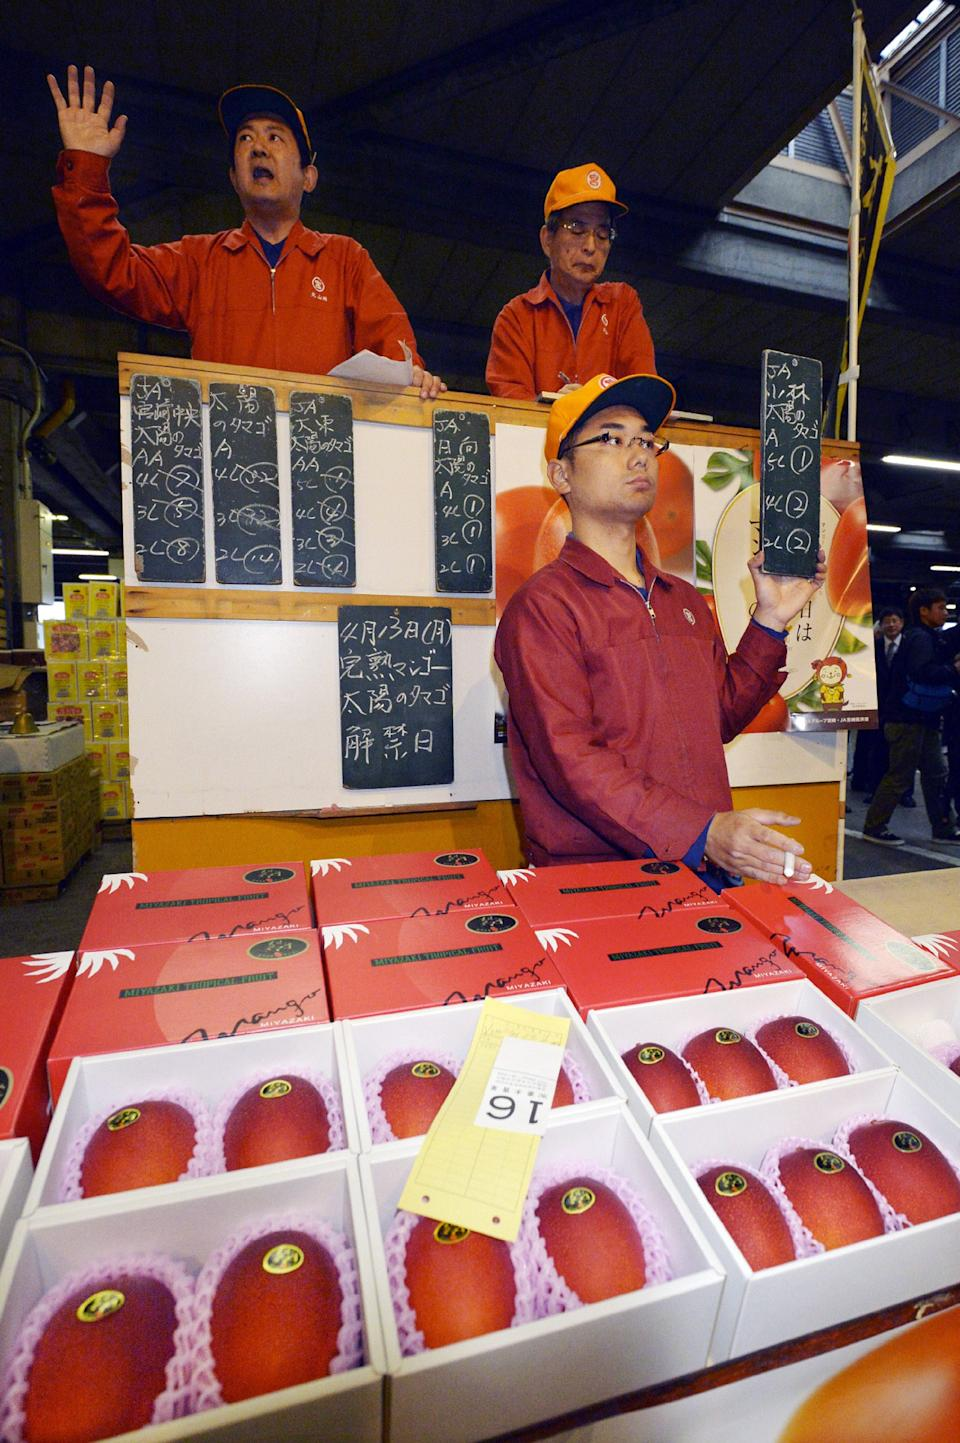 A pair of mangos is auctioned off at the wholesale market in Miyazaki in Japan's southern island of Kyushu for some 300,000 yen (2,500 USD) on April 13, 2015.  The high-priced mangoes, called